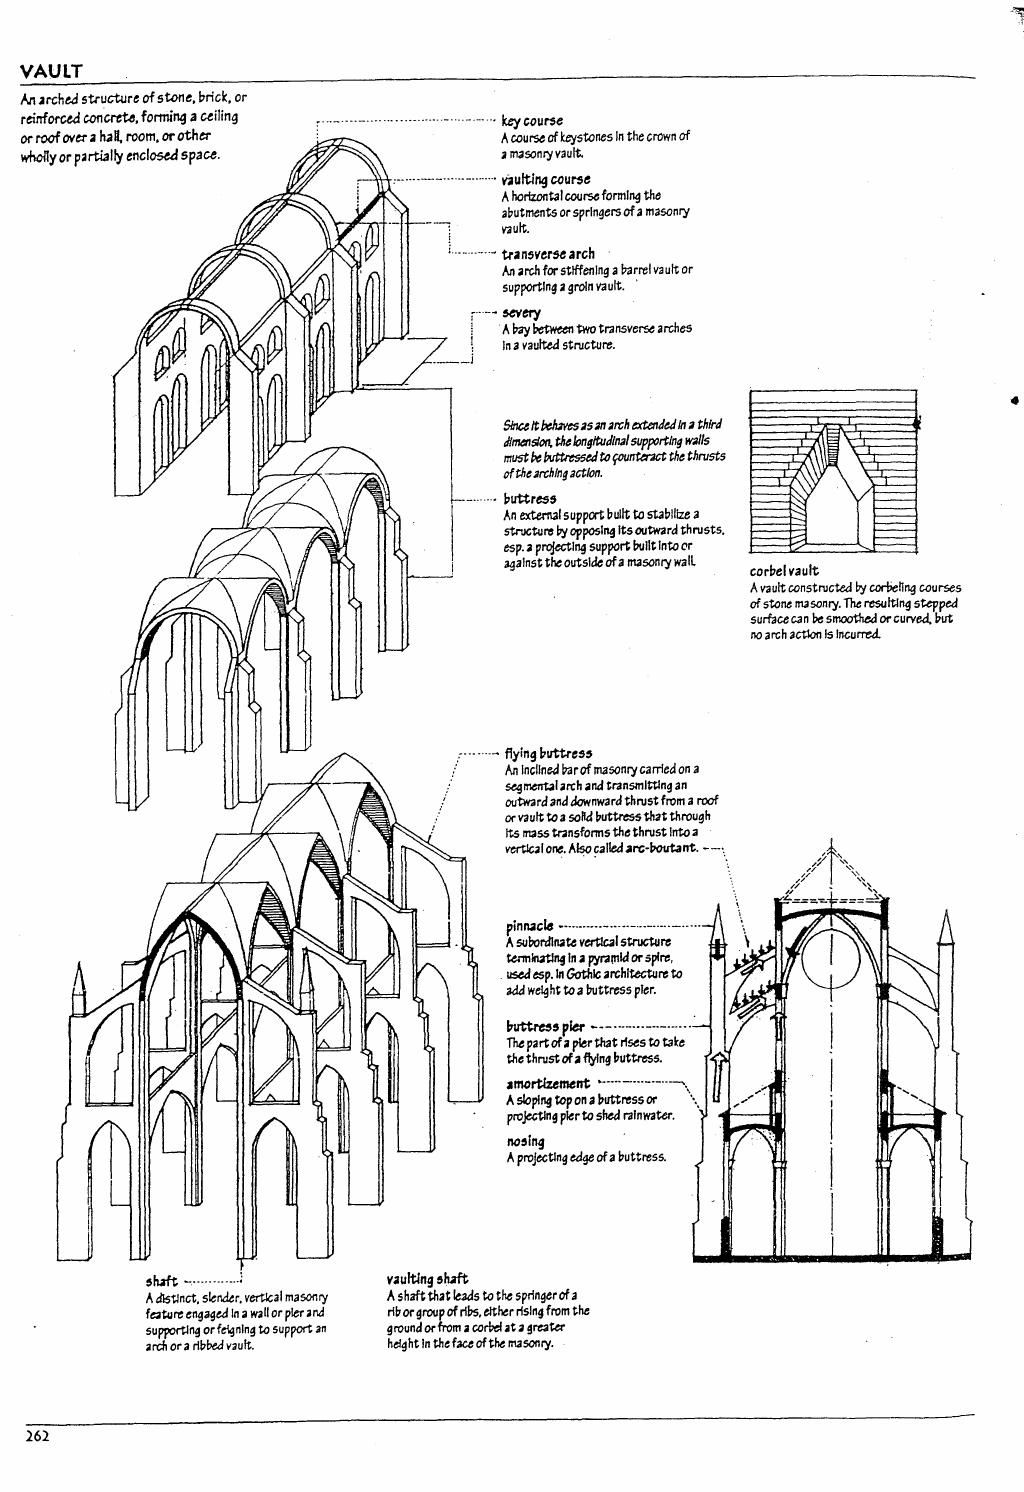 A Visual Dictionary Of Architecture In 2020 Architecture Flying Buttress Visual Dictionary